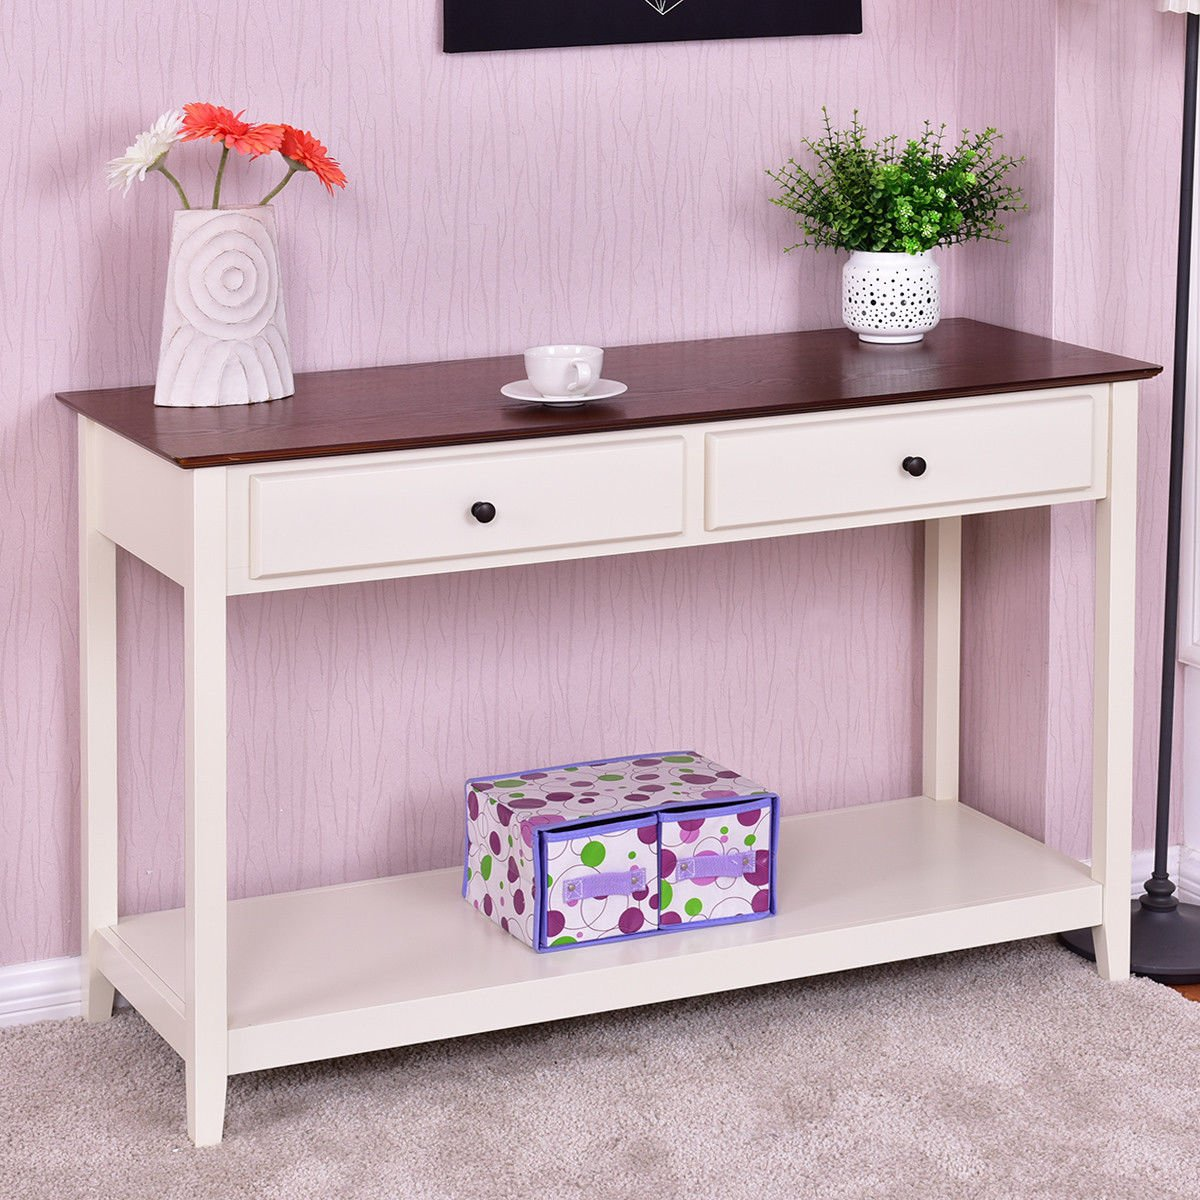 Wood Console Sofa Table Accent Stand with Drawer and Shelf by yunita_salon